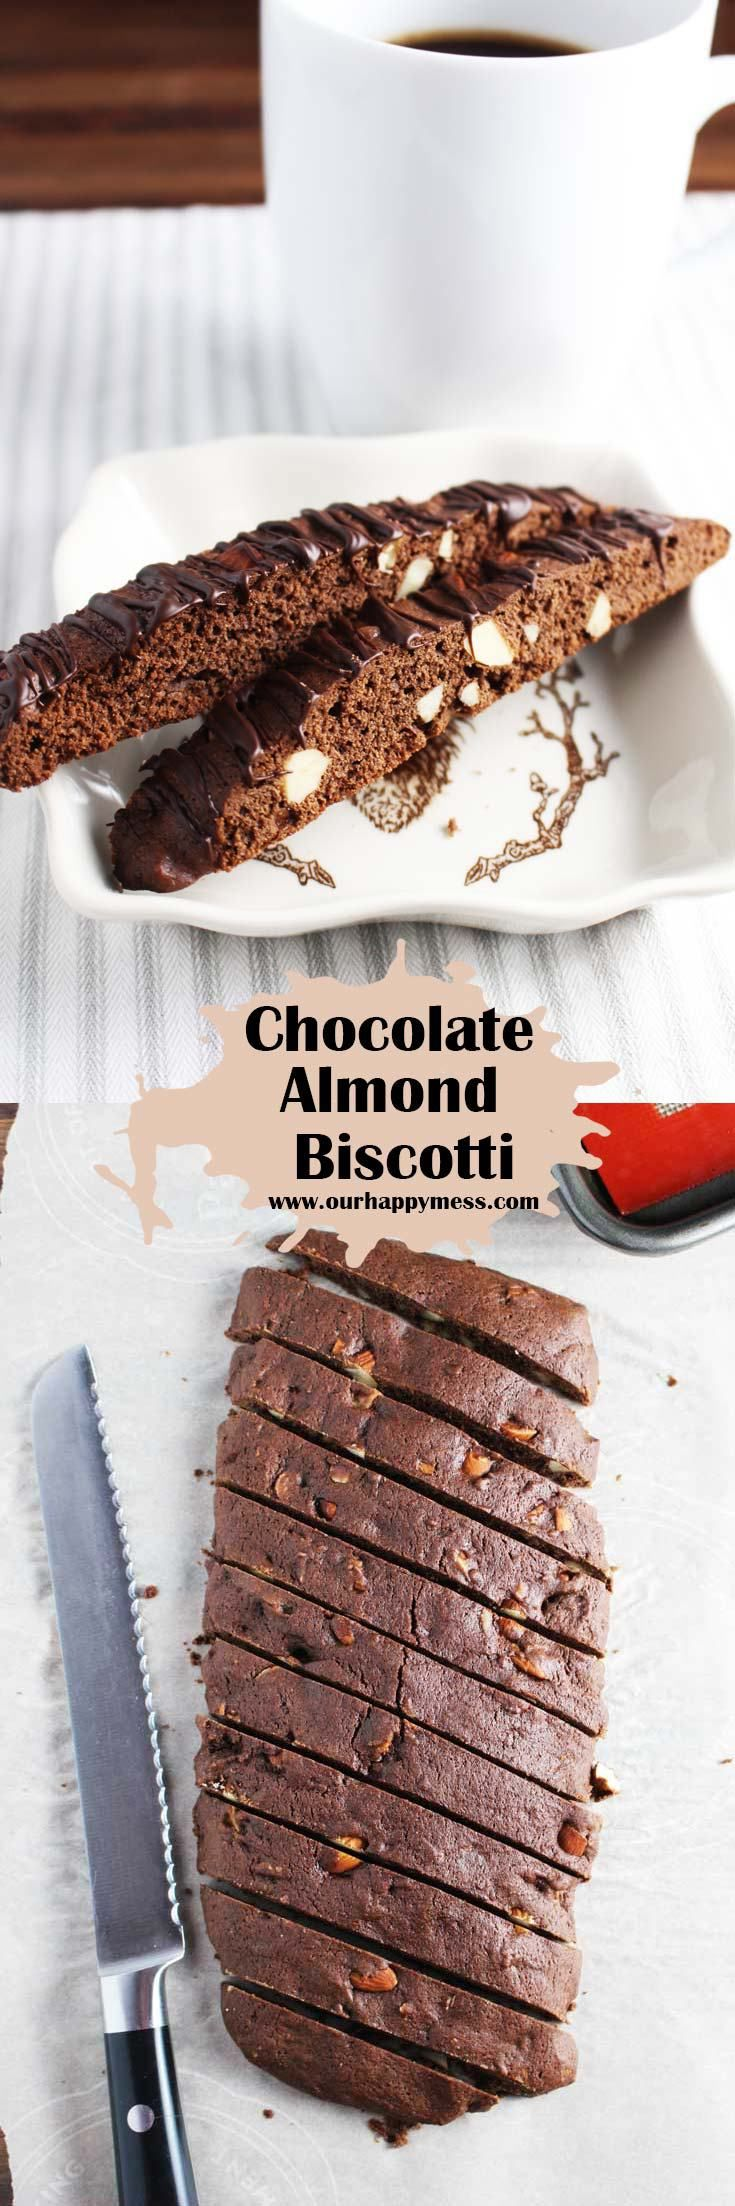 These almond chocolate biscotti are easy and fun to make. Drizzle them with chocolate for a sweeter cookie, or keep them plain for dunking in your coffee. Great for gifting too! #foodgift #biscotti #chocolatebiscotti